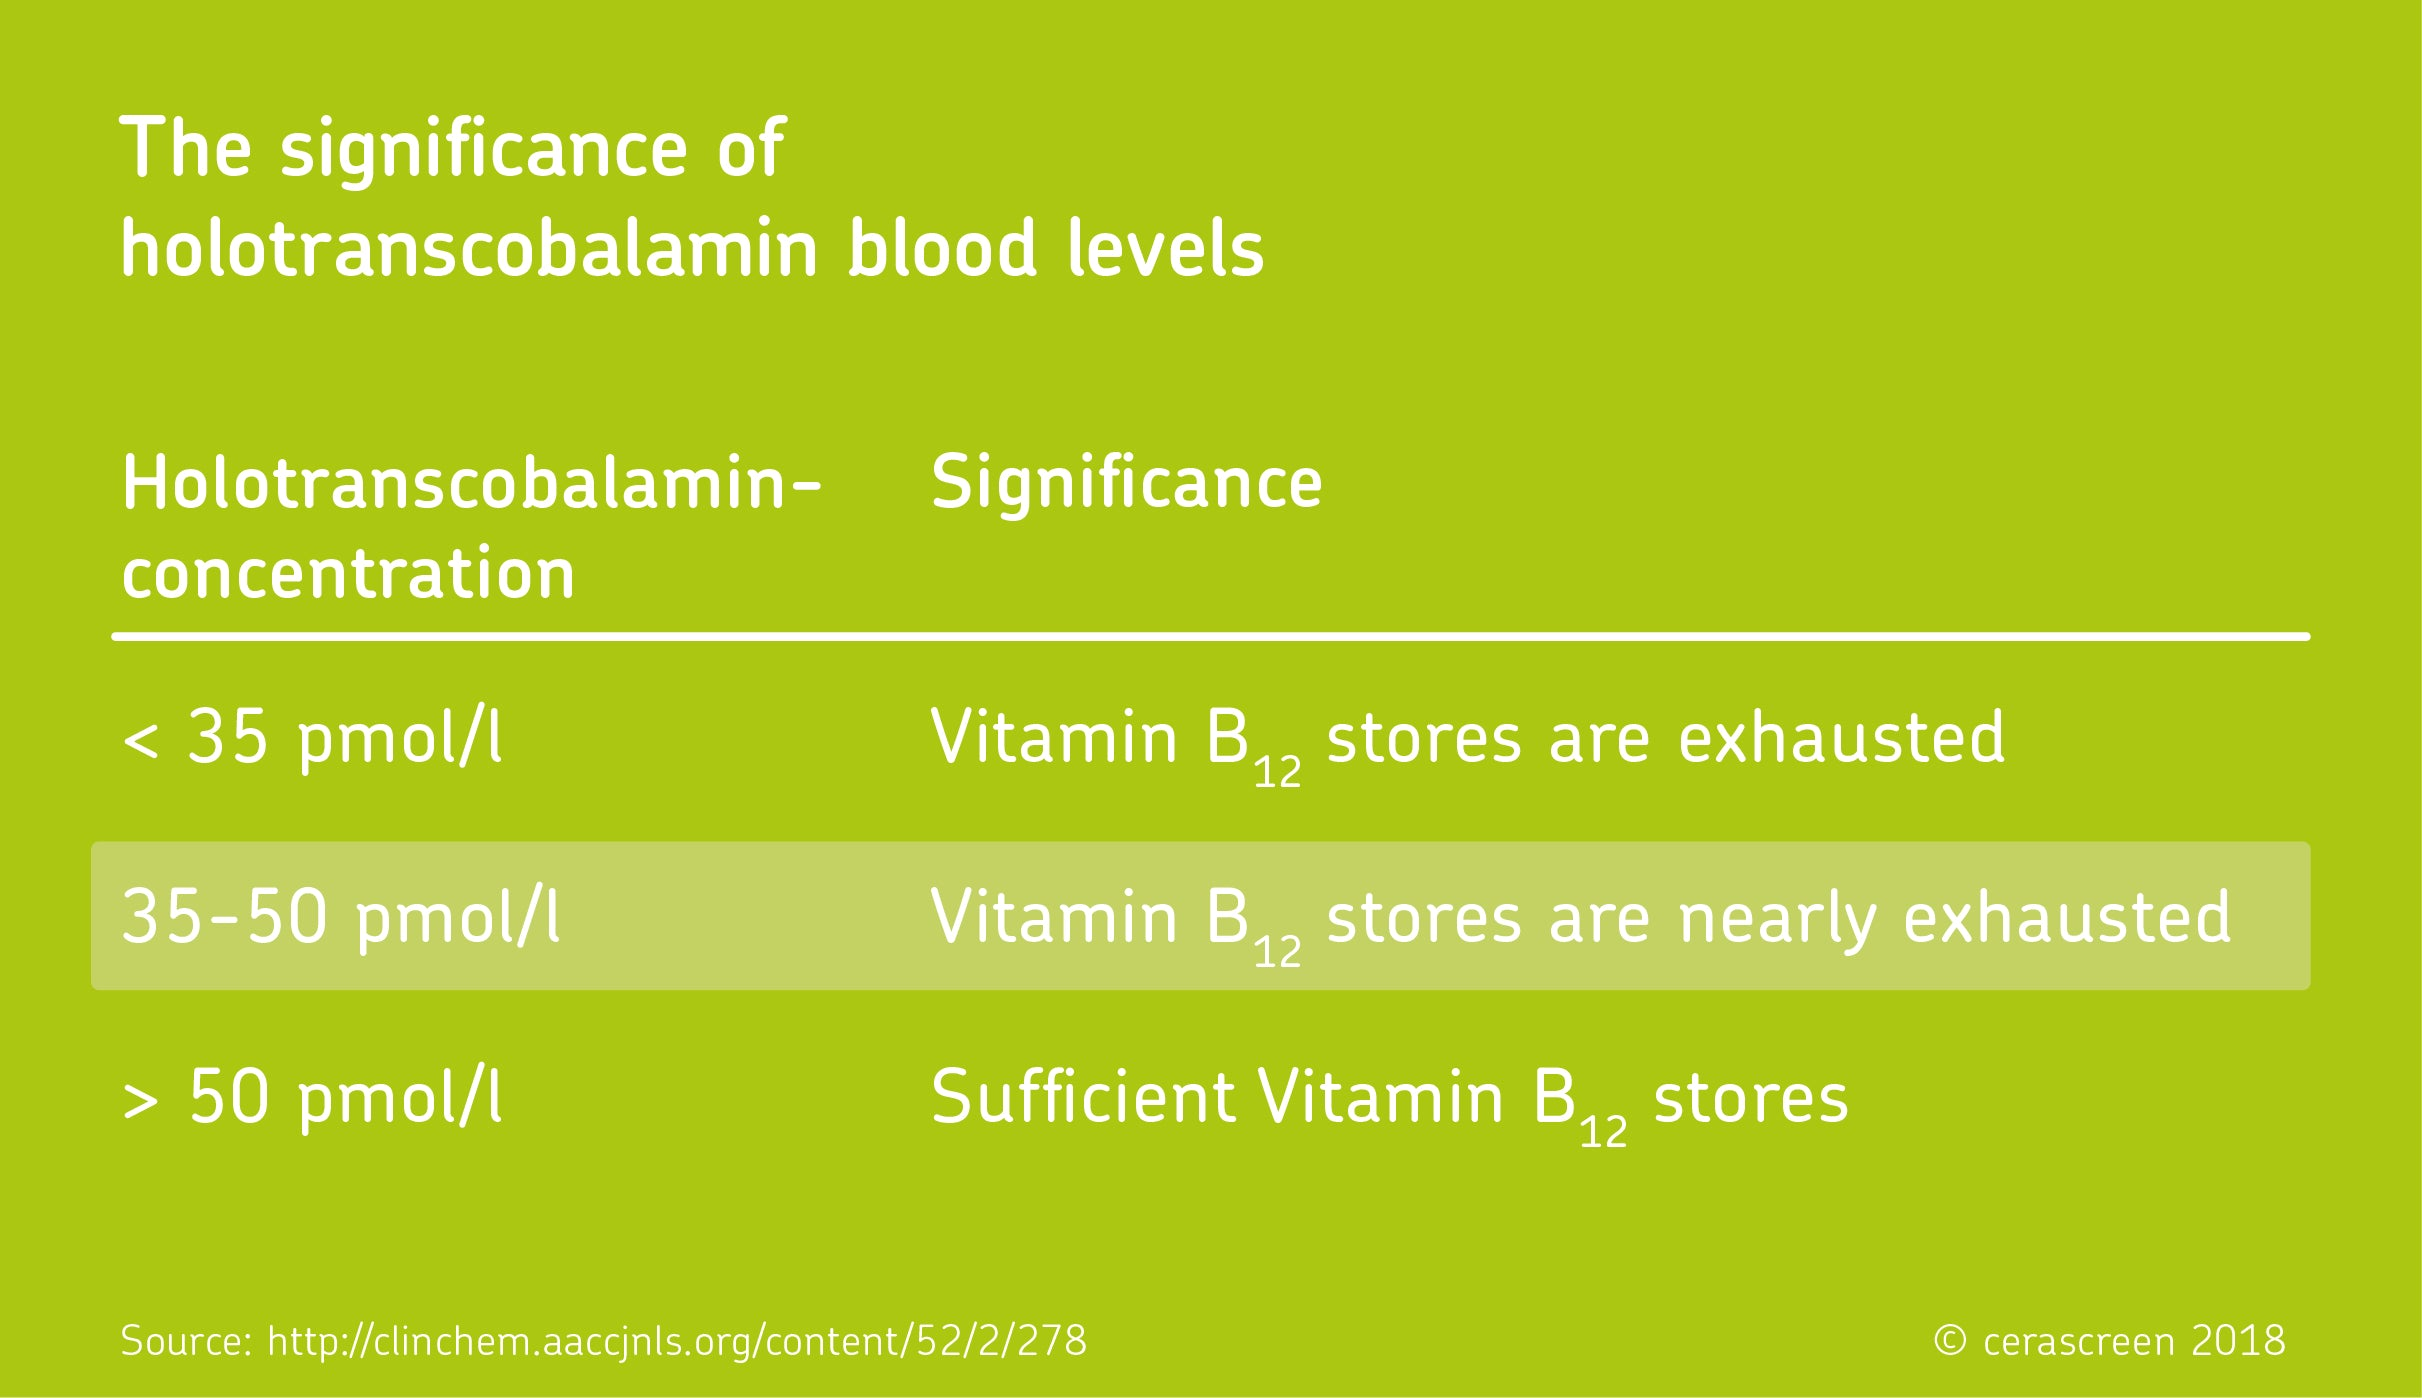 significance of holotranscobolamin blood levels